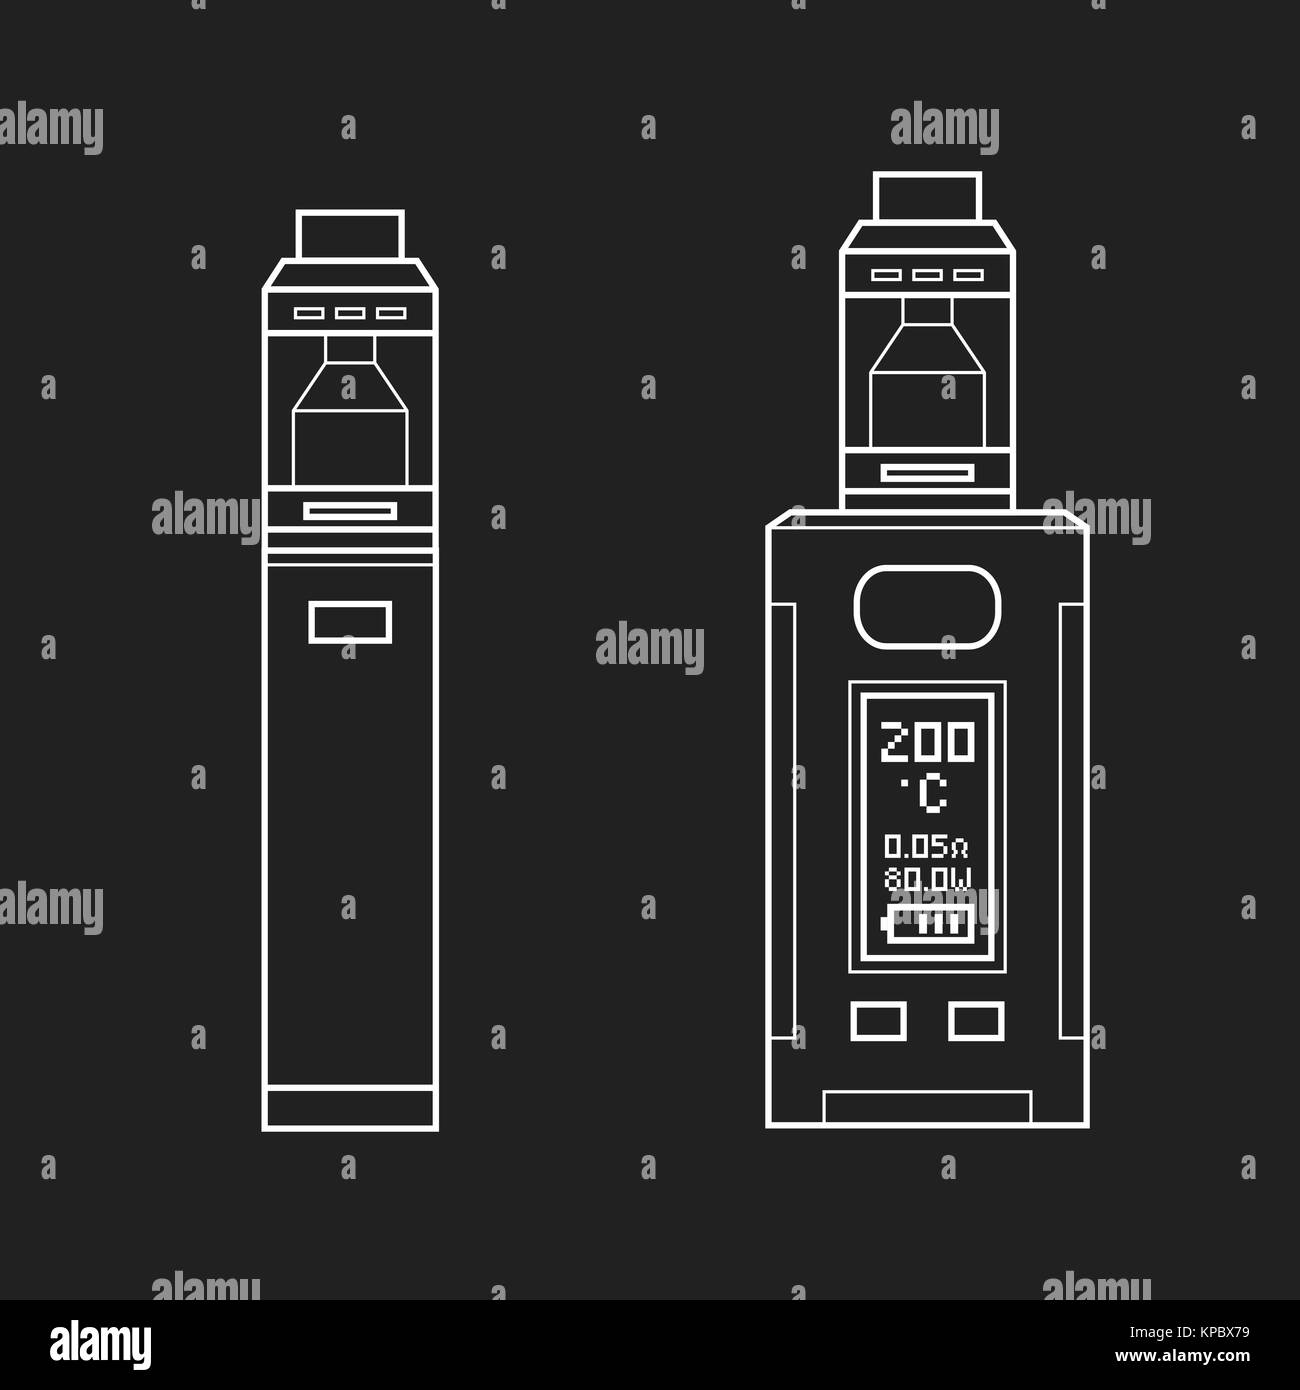 vector white monochrome outline illustrations various types vaporizer mechanical and box mods illustrations isolated - Stock Image